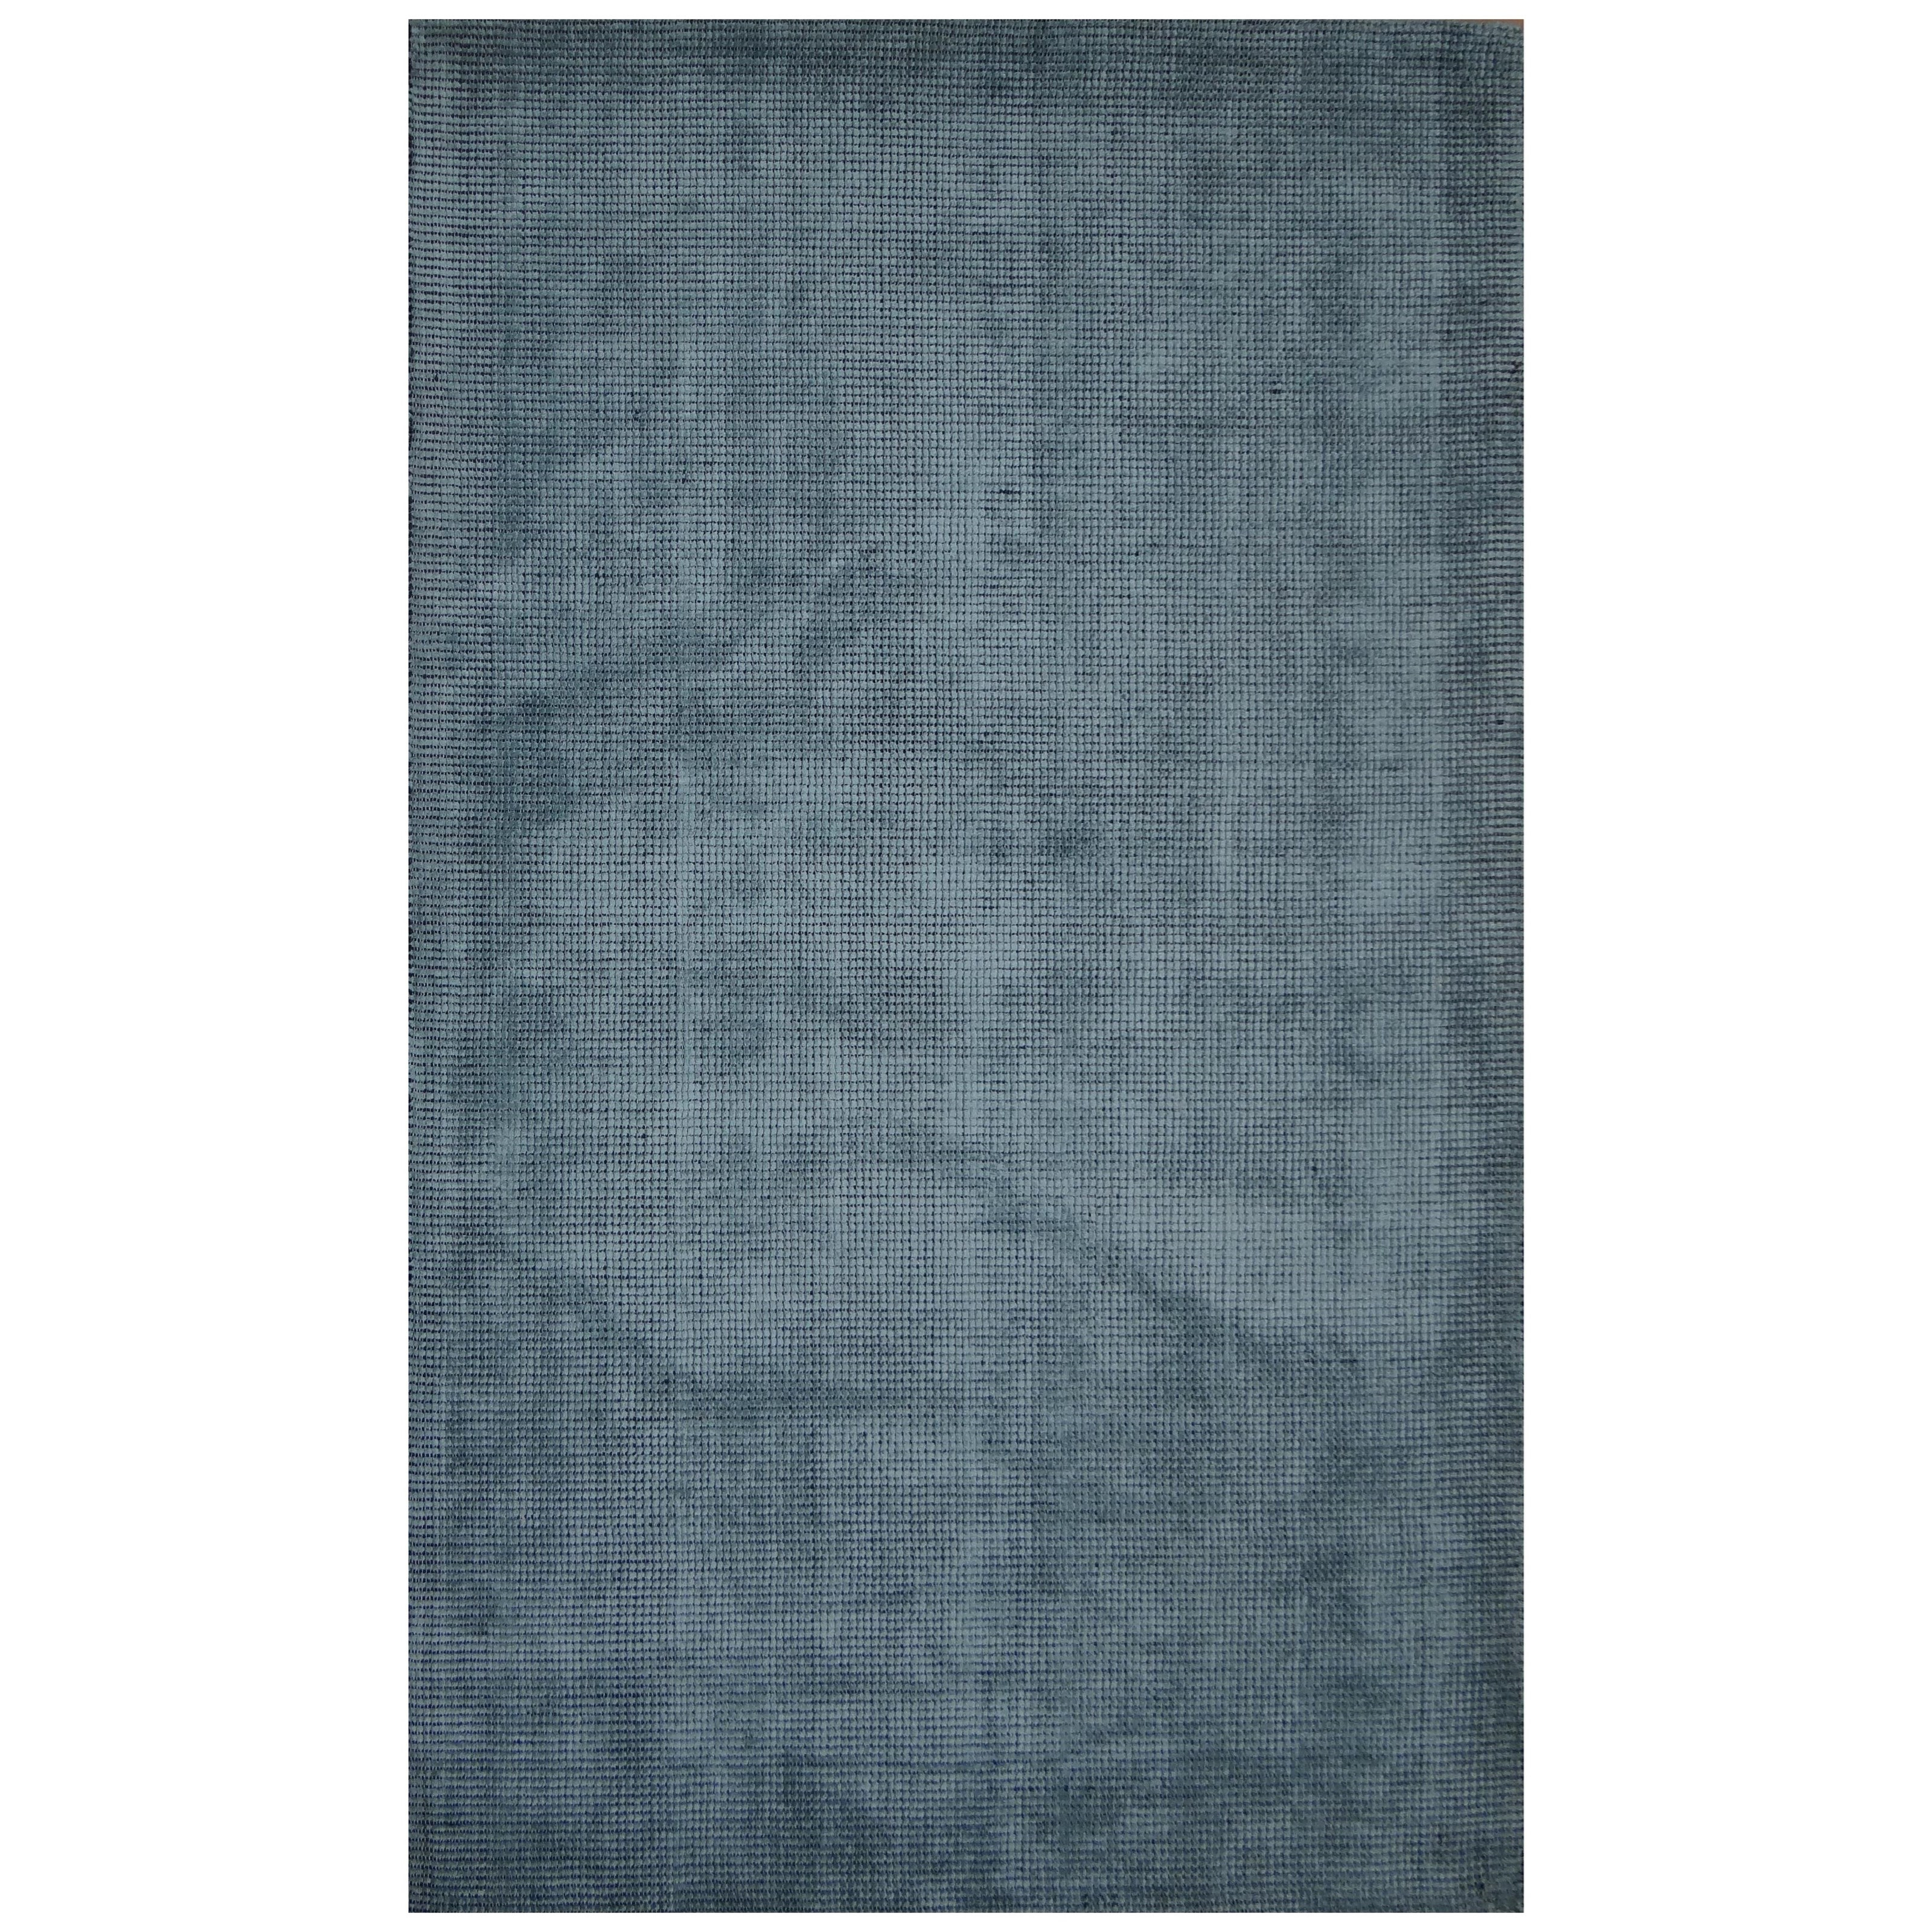 Moe's Home Collection Rugs Bossa Nova Rug 5X8 Jade - Item Number: JH-1005-16